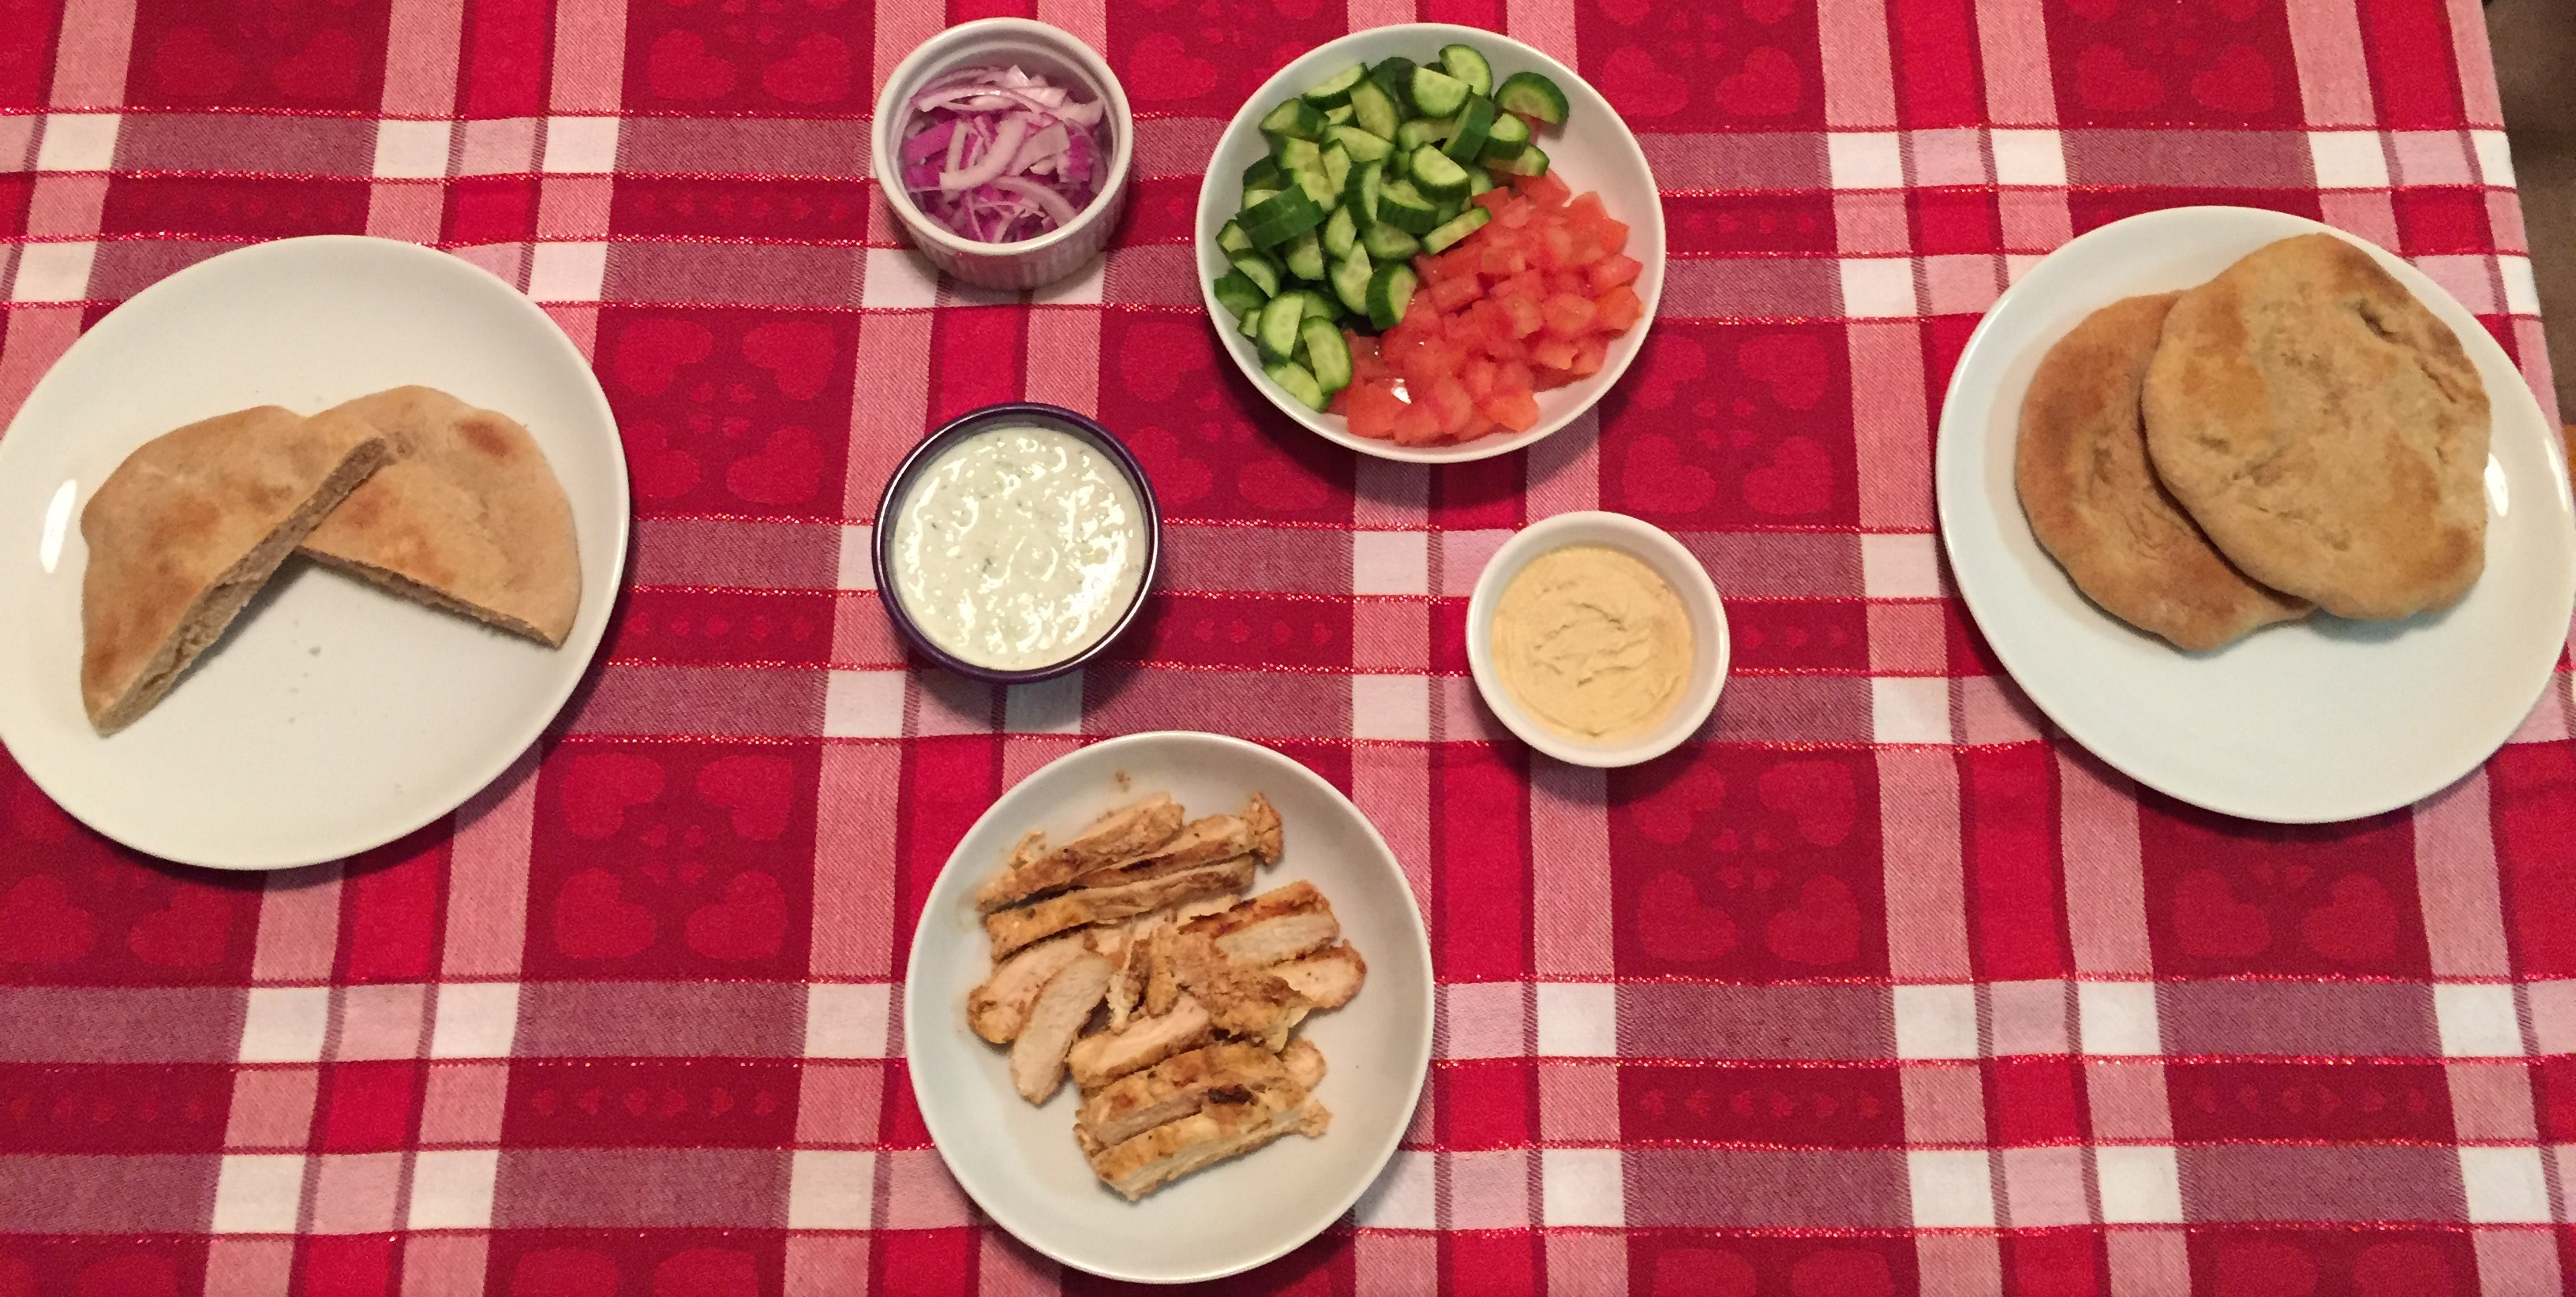 Week 29 – Basic Hummus, Whole Wheat Pita Bread, and Grilled Chicken ...